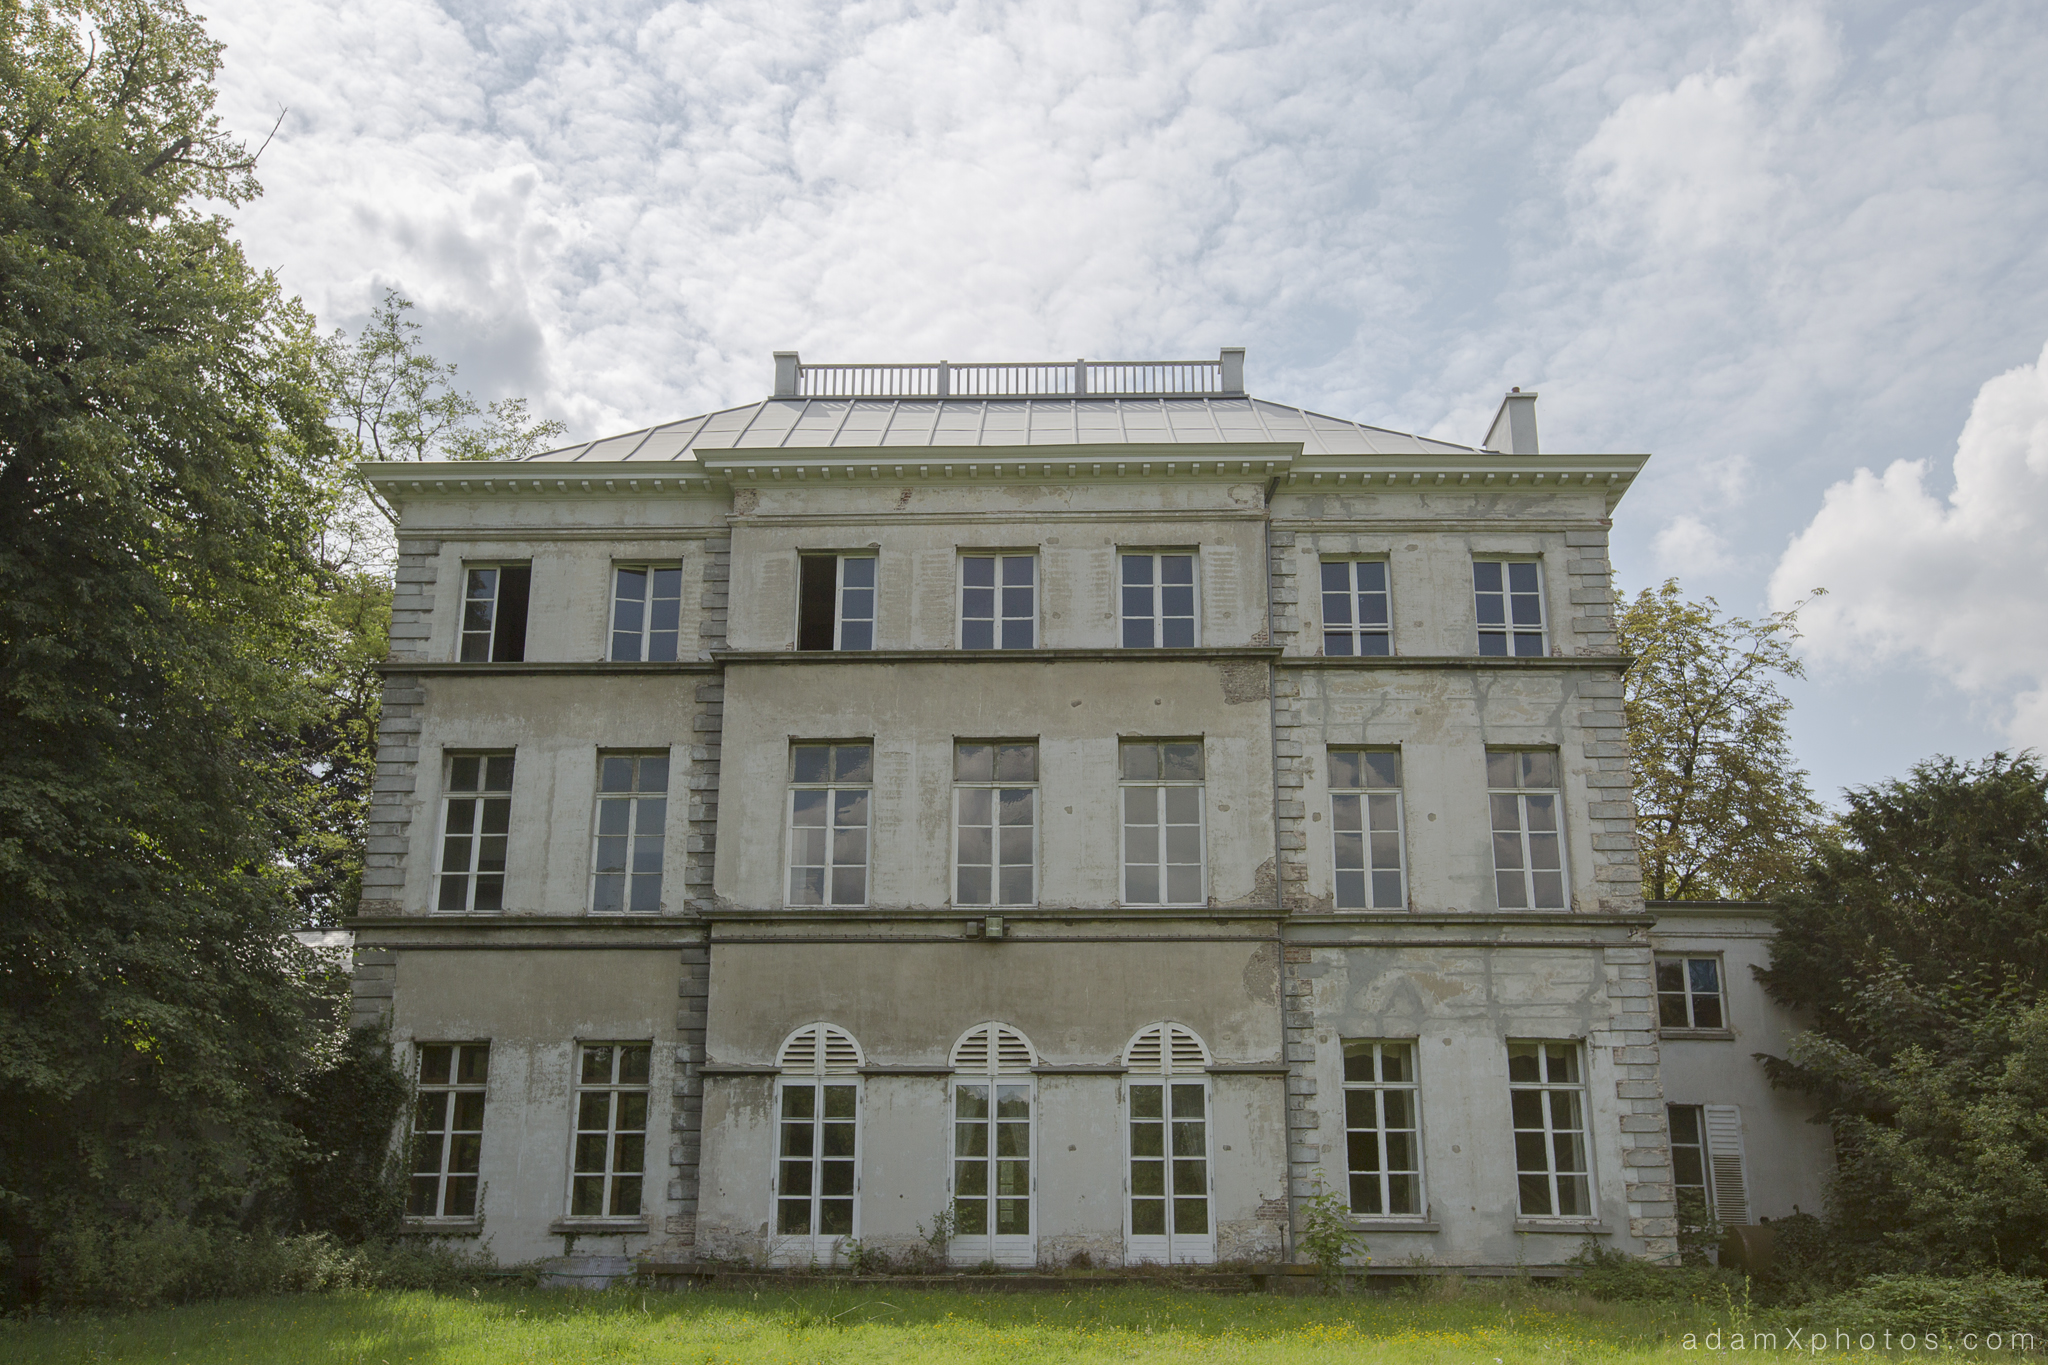 Adam X Chateau de la Chapelle urbex urban exploration belgium abandoned exterior outside external building garden